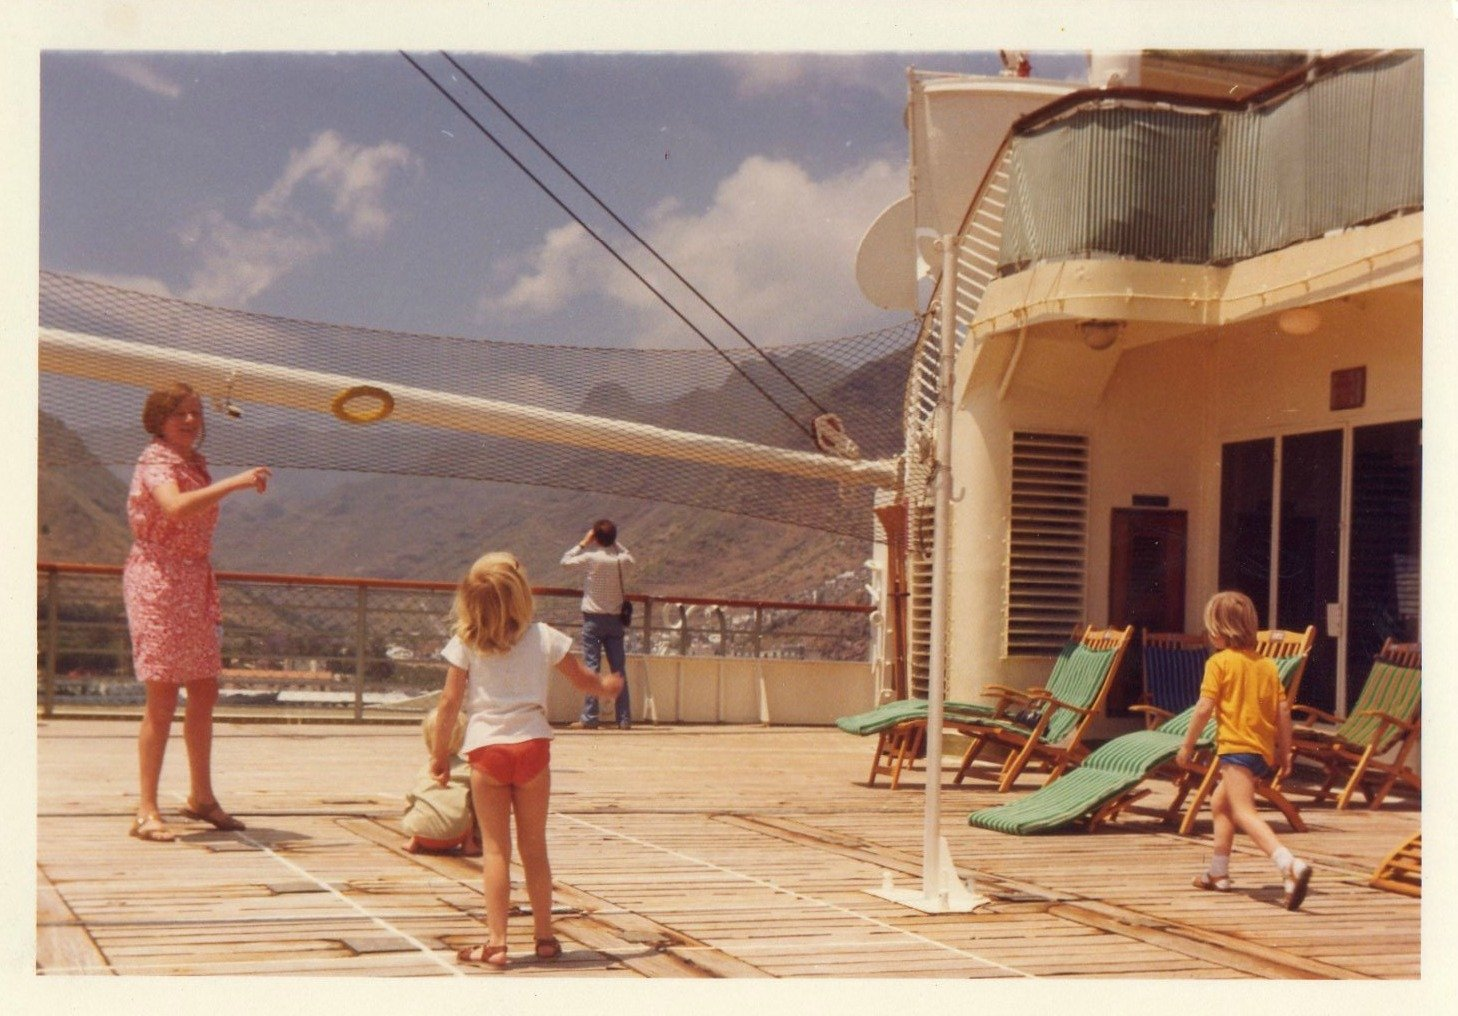 onboard ship playing quoits in Tenerife